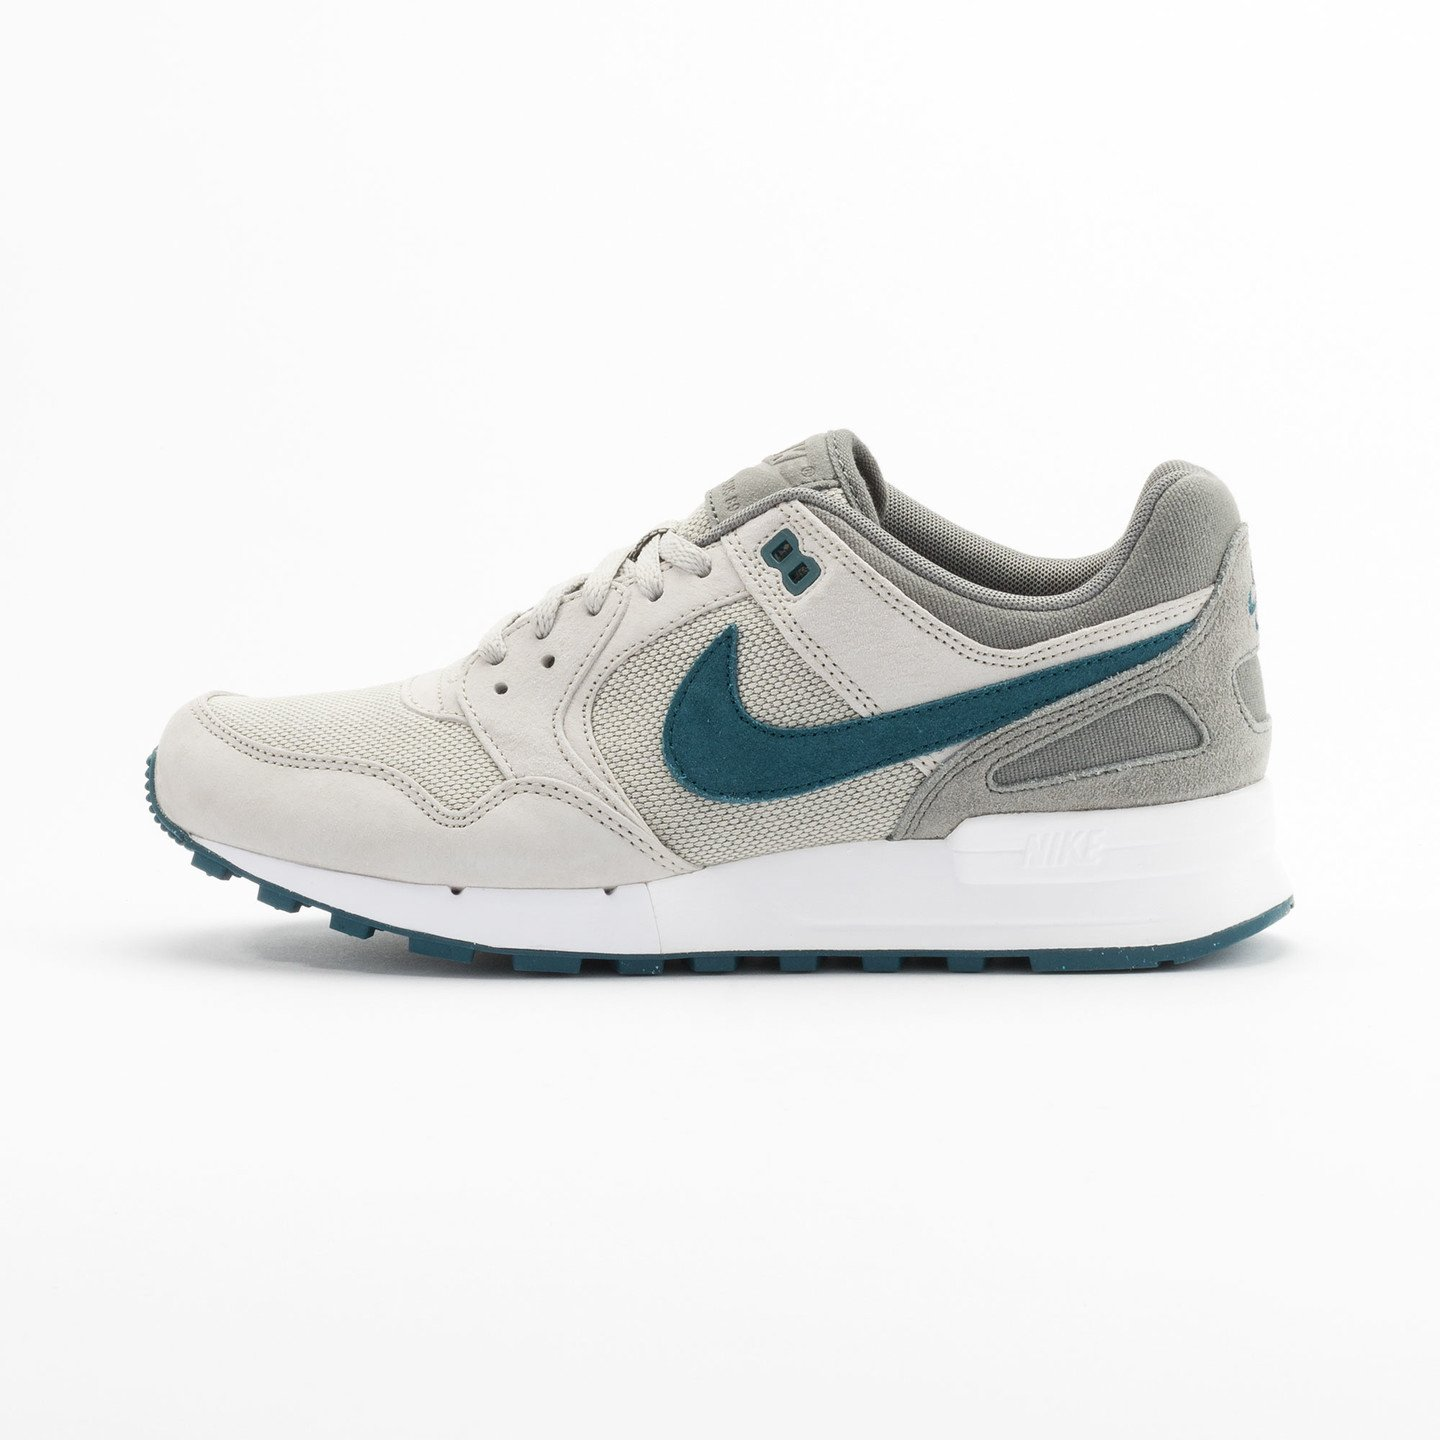 Nike Air Pegasus 89 Premium Lunar Grey / Teal - Tumbled Grey 724269-030-44.5